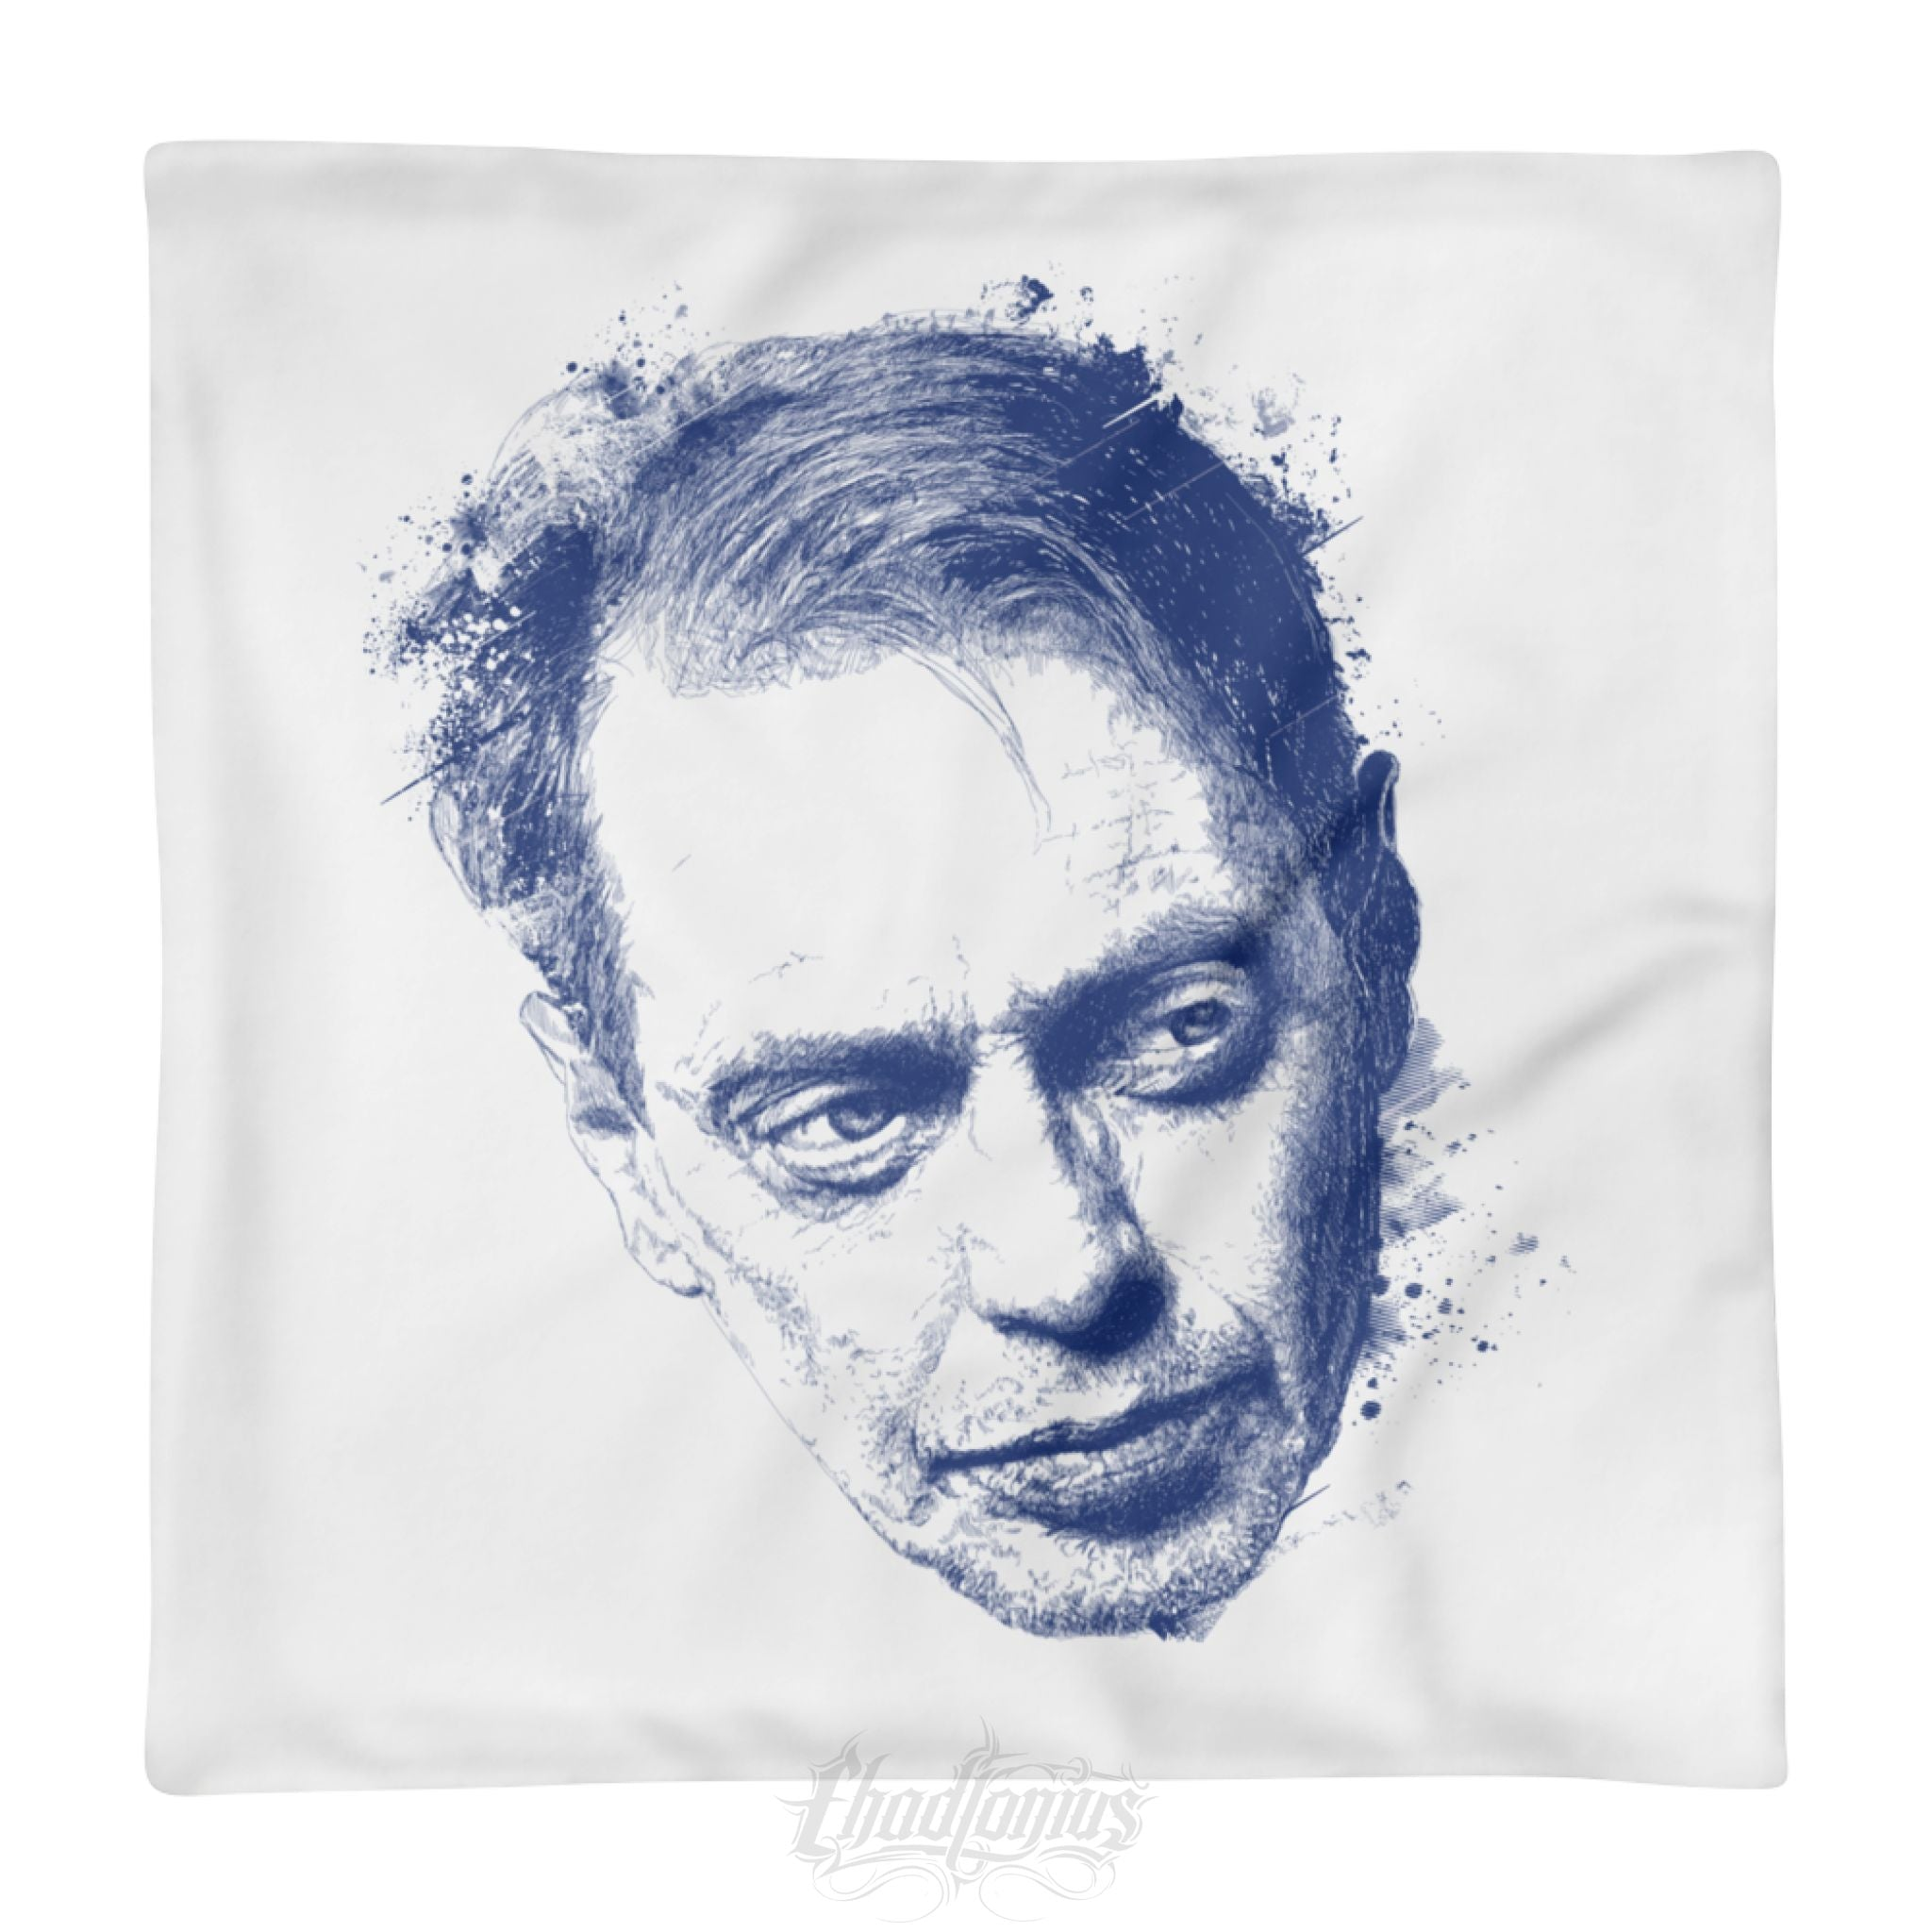 STEVE BUSCEMI ROCKS - Square Pillow Case only